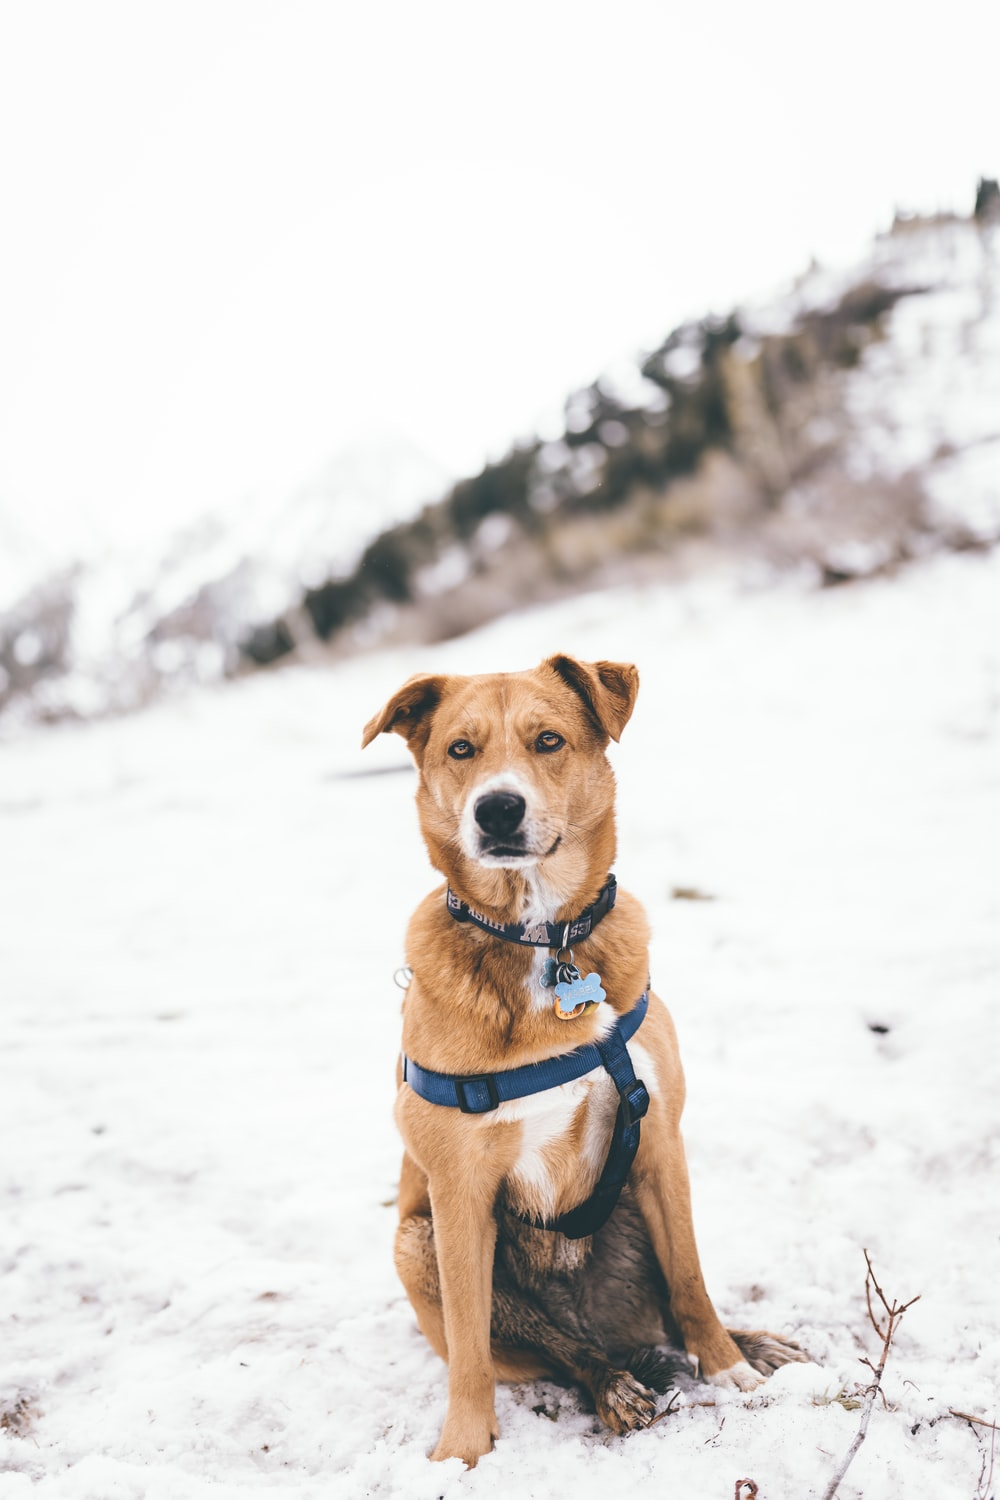 short-coated brown and white dog on snowy field